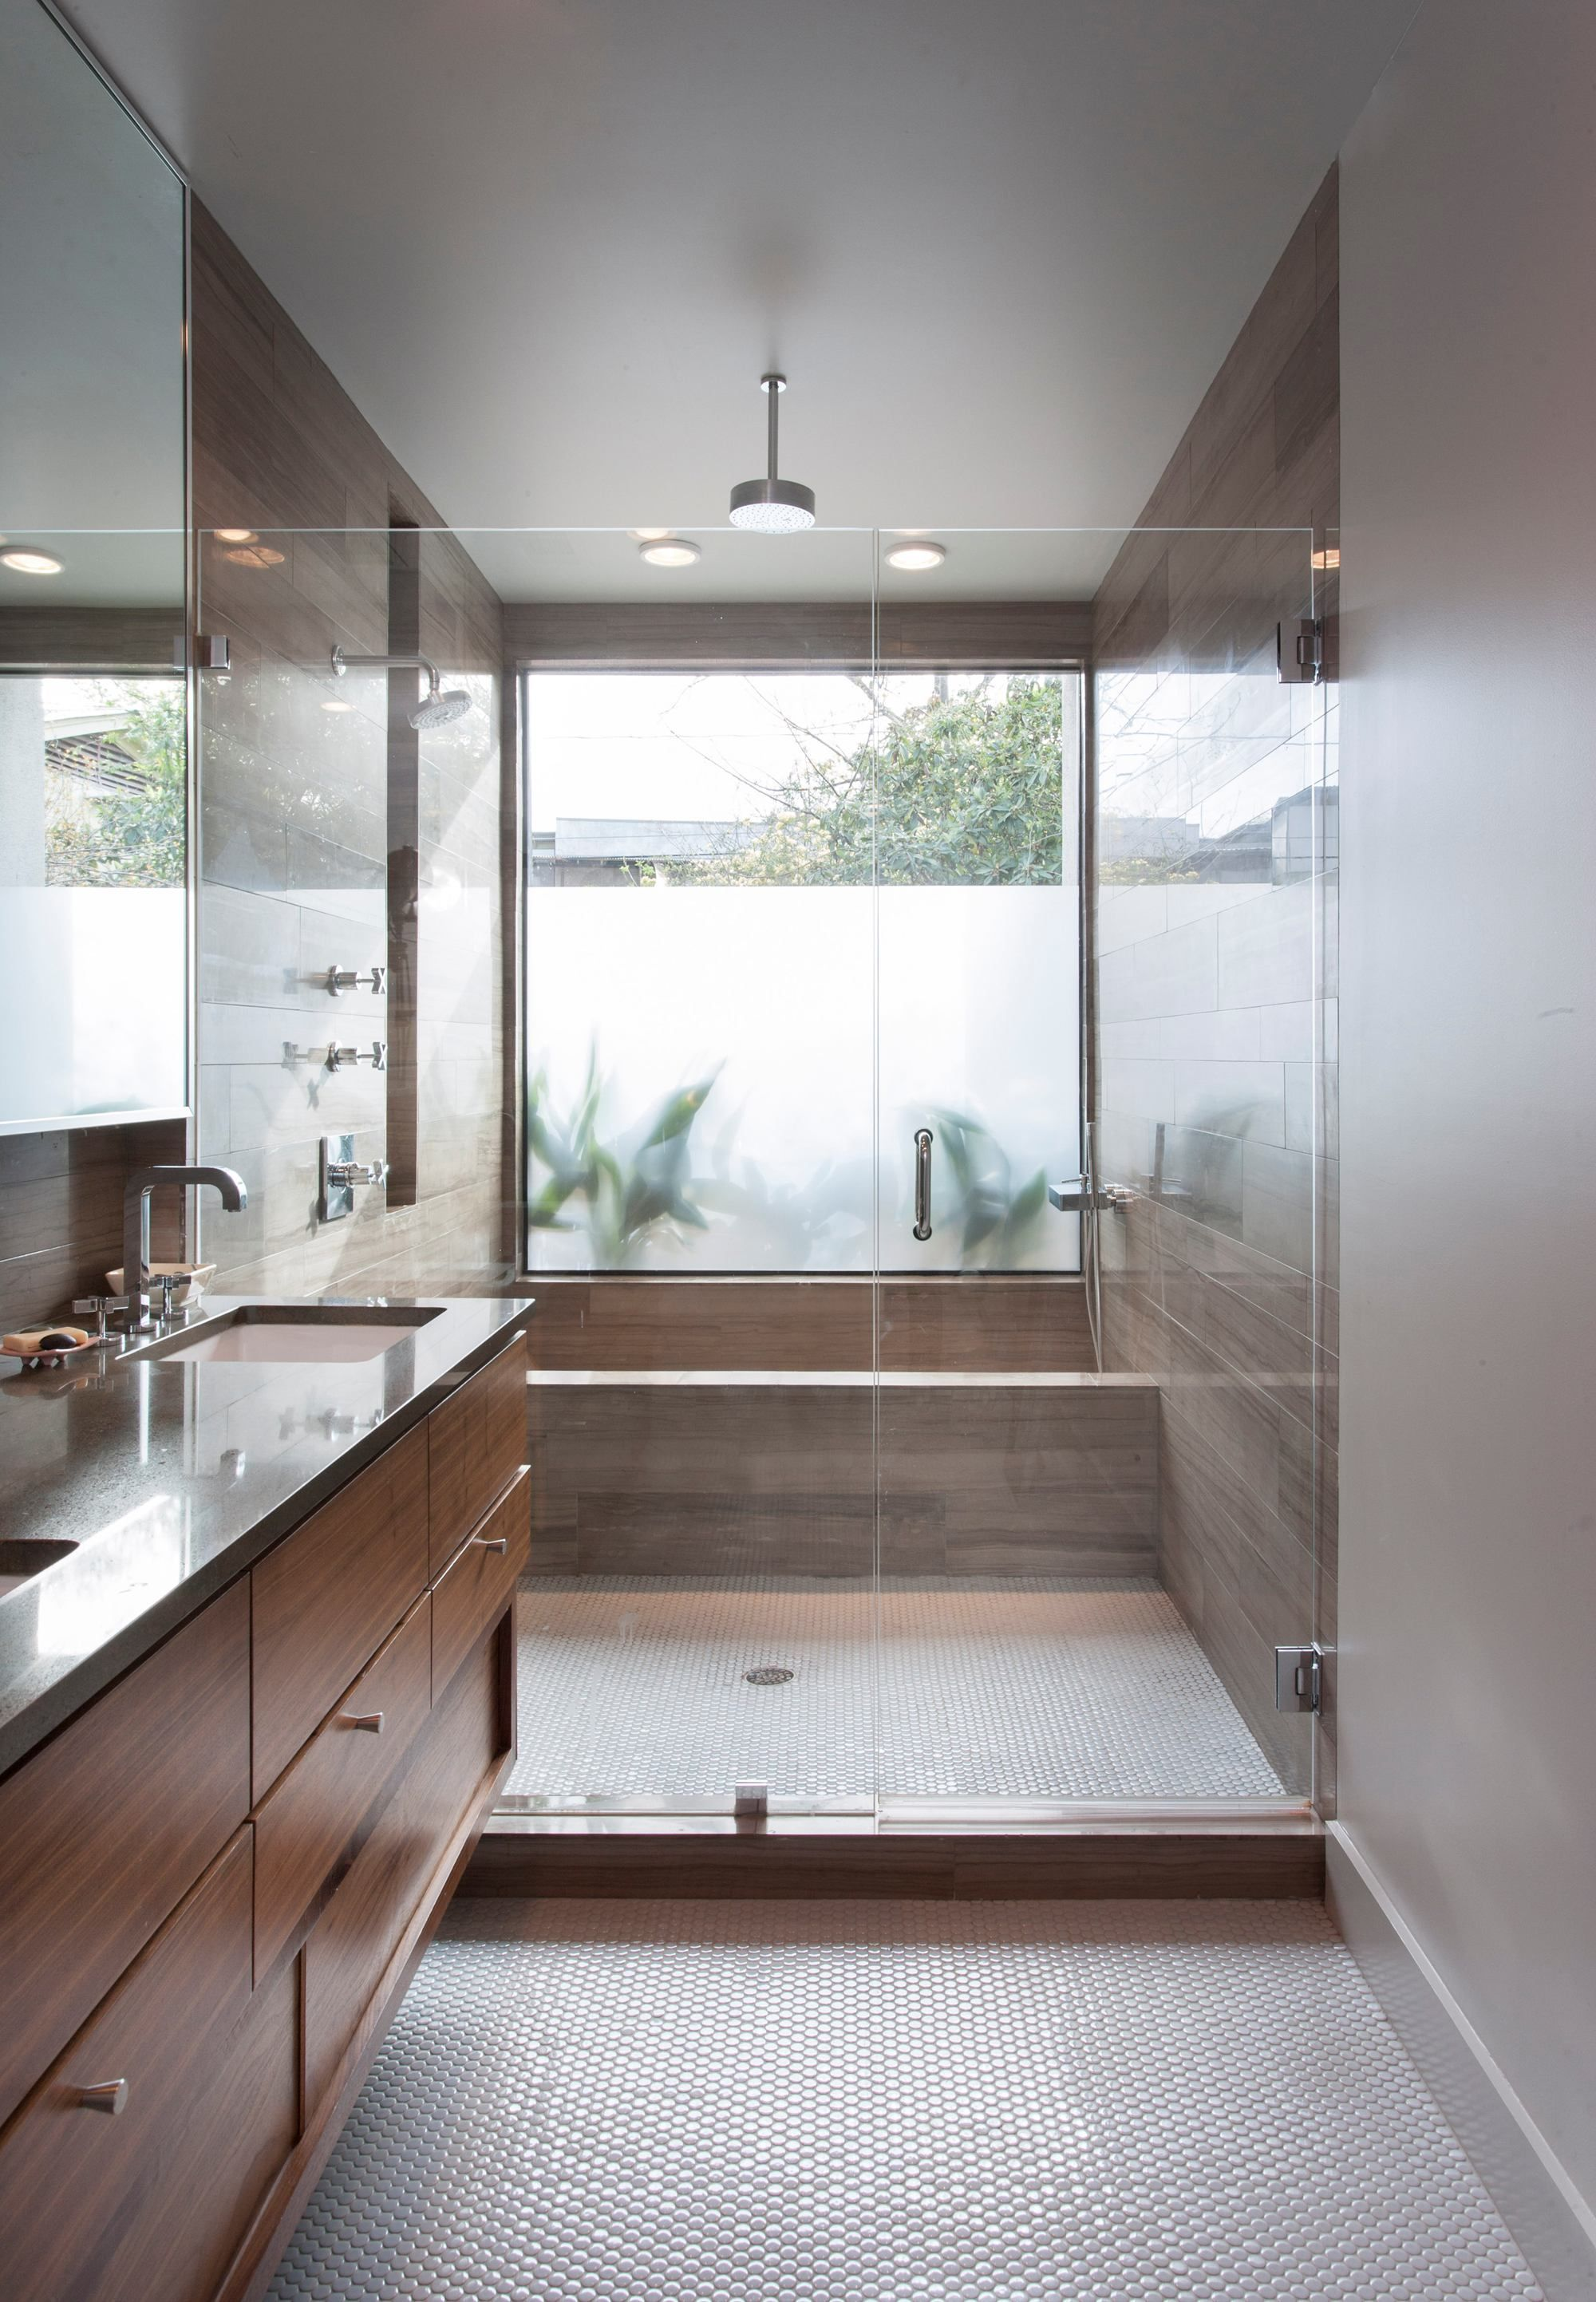 2013 Bath Room Winner, Features A Neat Twist On The